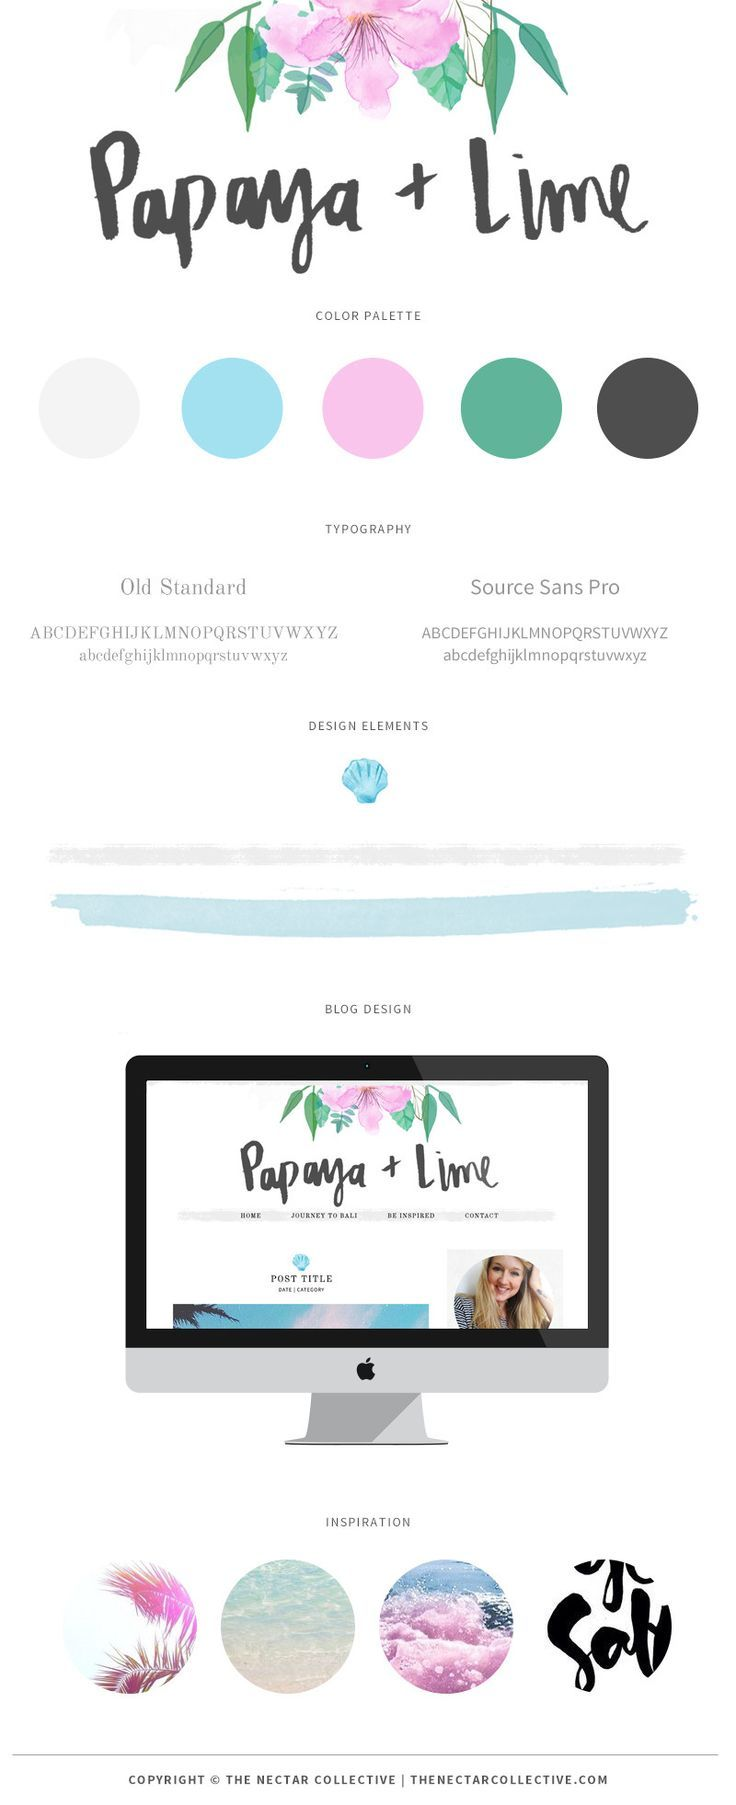 Web colors lime - Branding And Blog Design For Papaya Lime